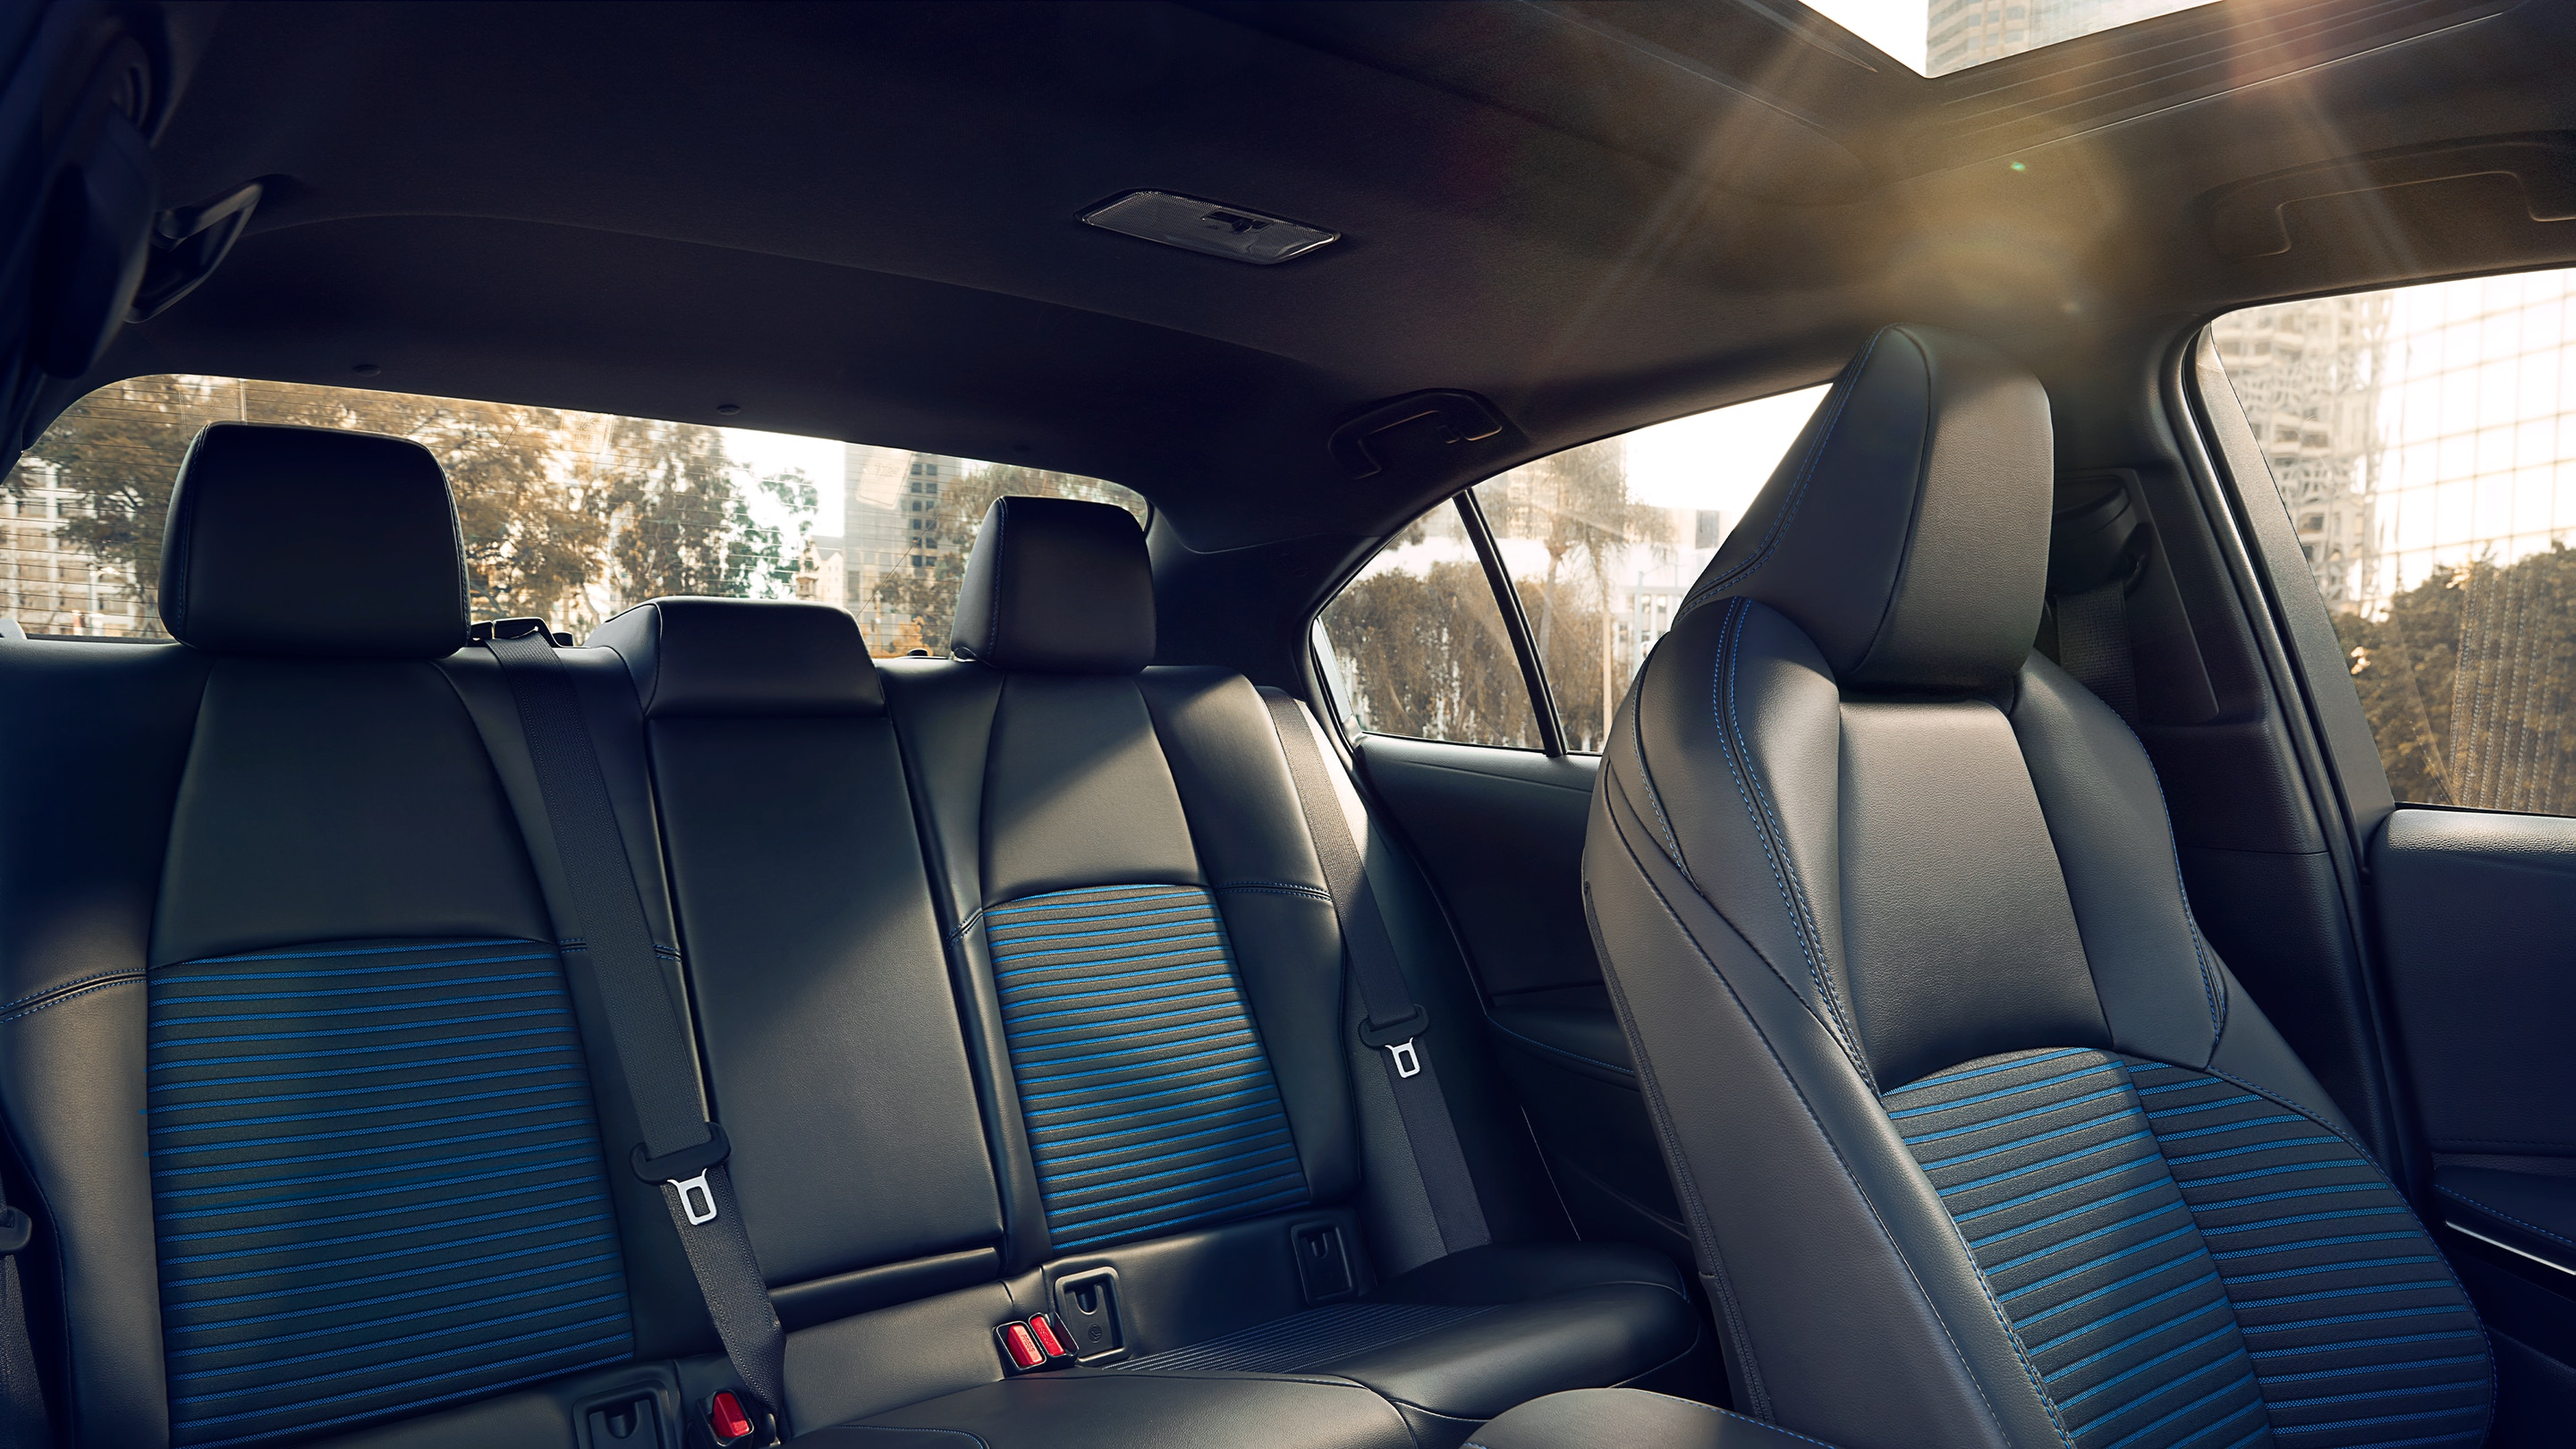 Cabin of the 2020 Corolla